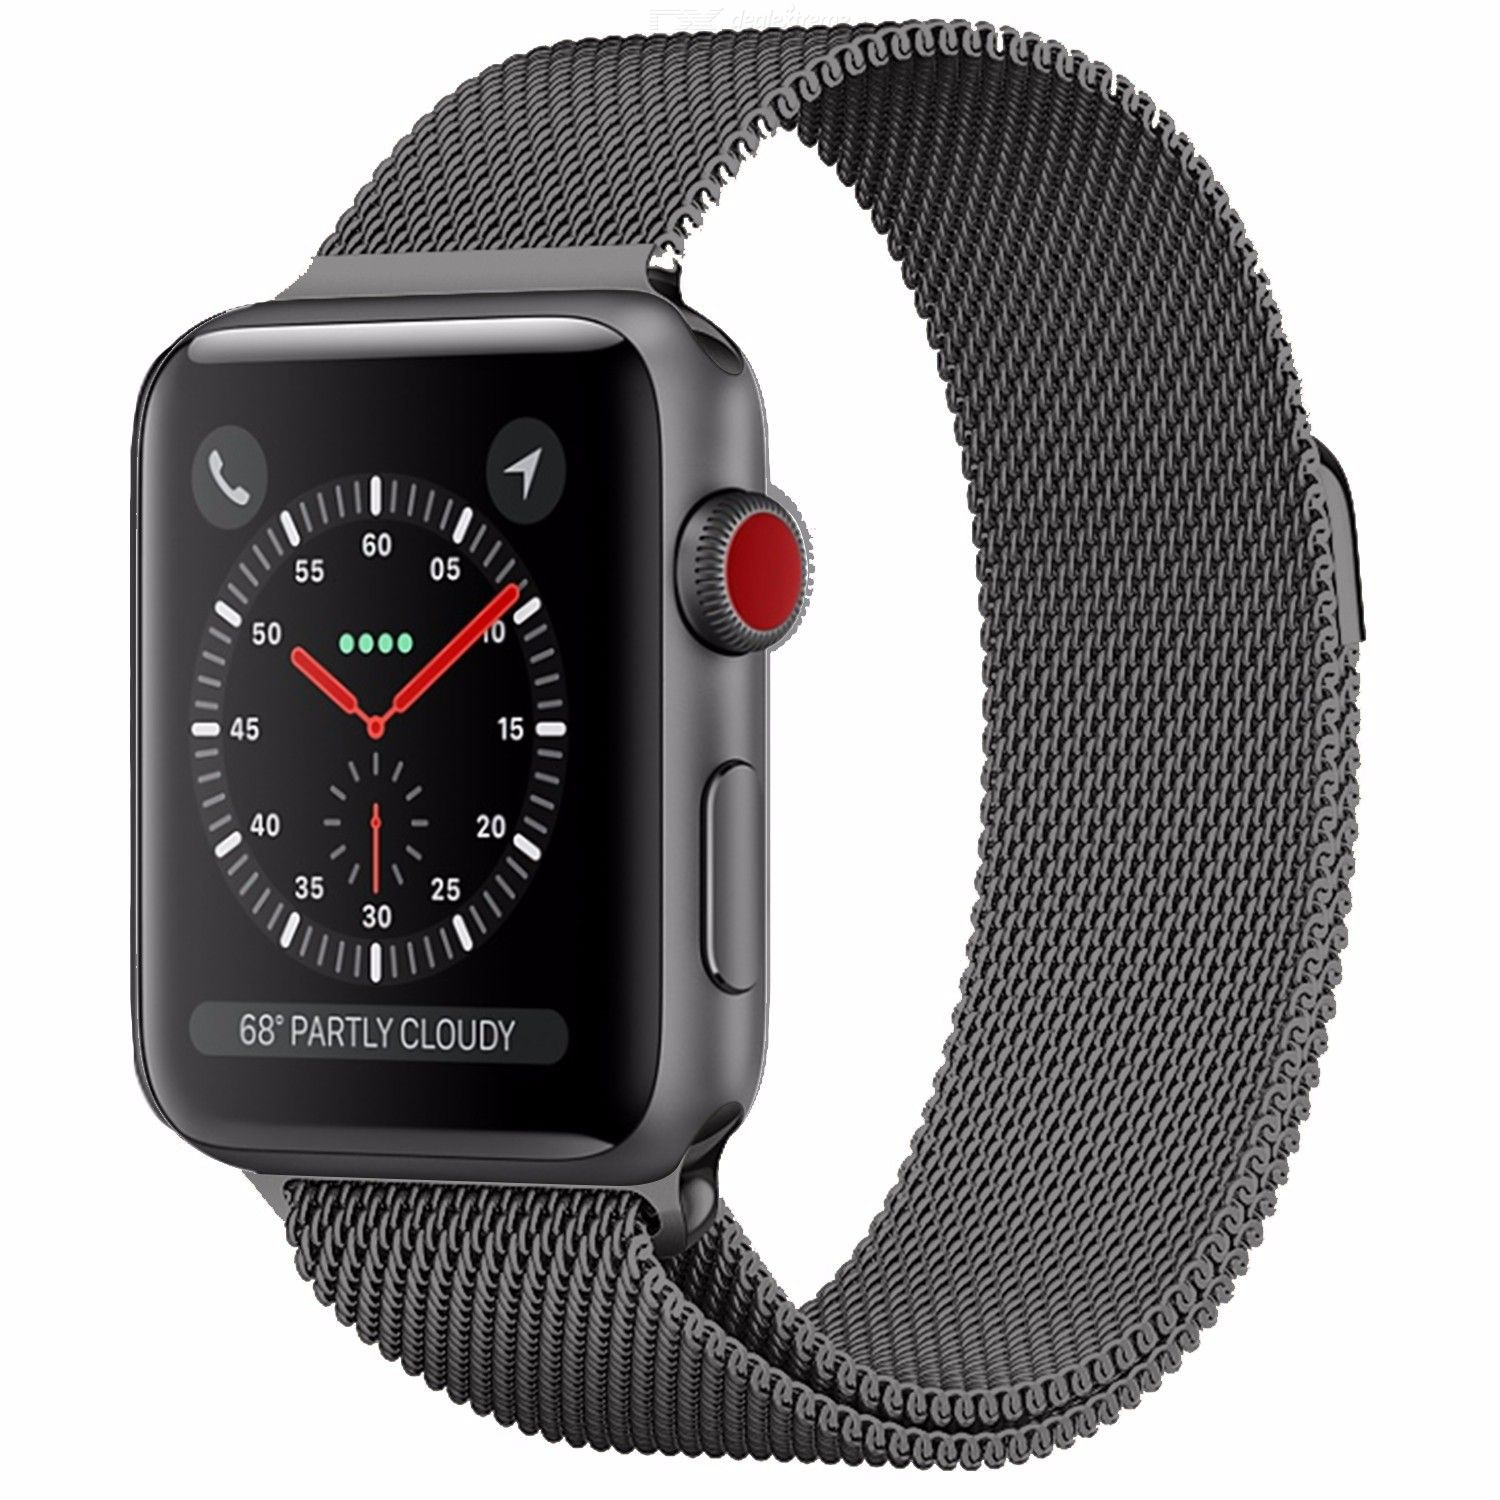 Milanese Loop Strap For Apple Watch 44mm 40mm 38mm 42mm, Stainless Steel Magnetic Watch Band for iWatch 1 2 3 4 5